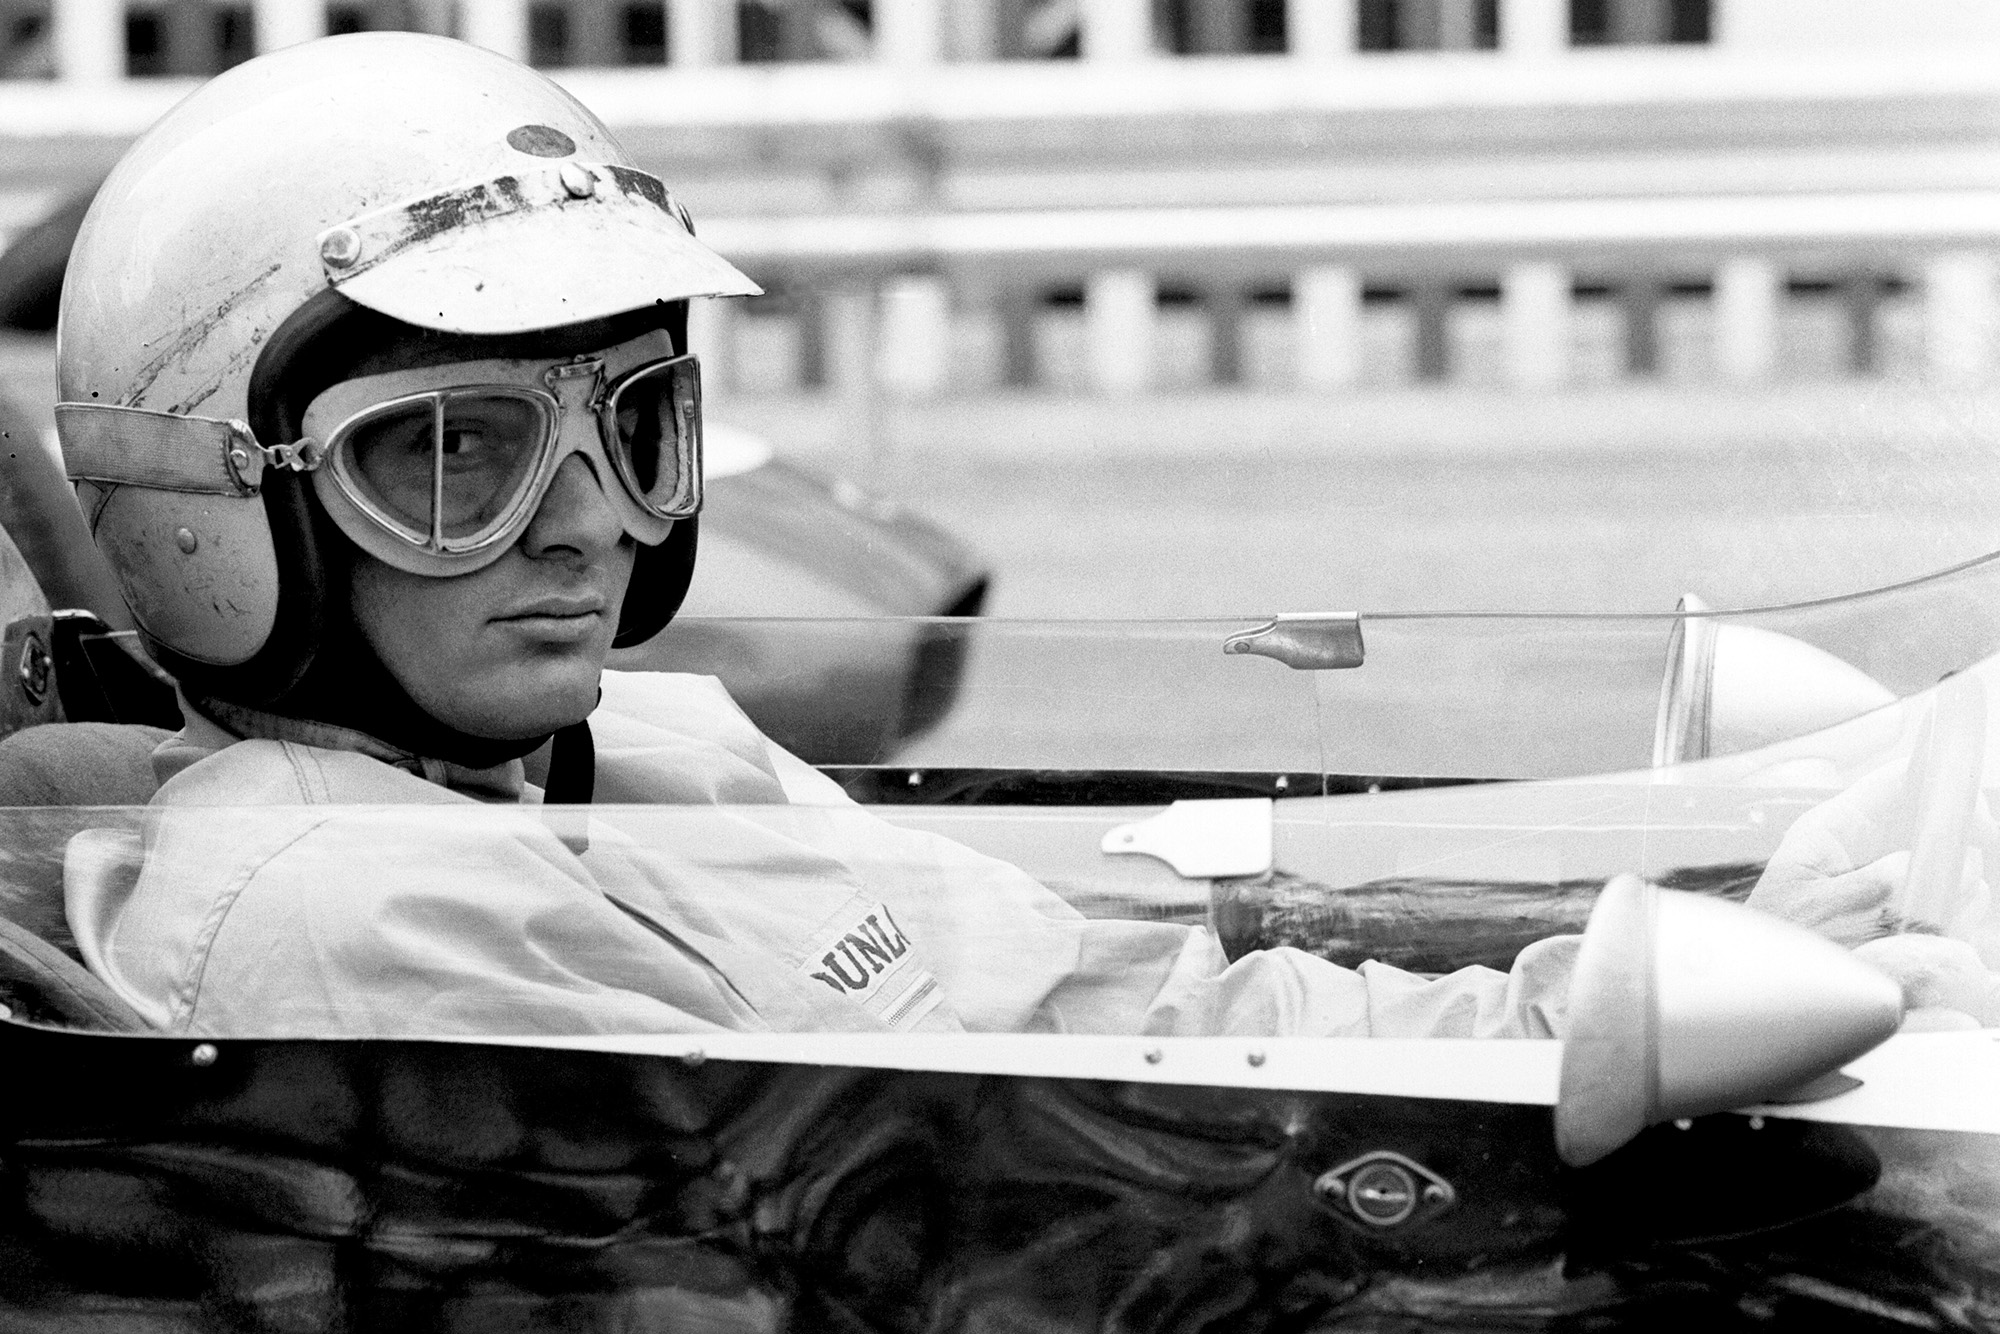 Bruce McLaren: the man, the racer, the engineer